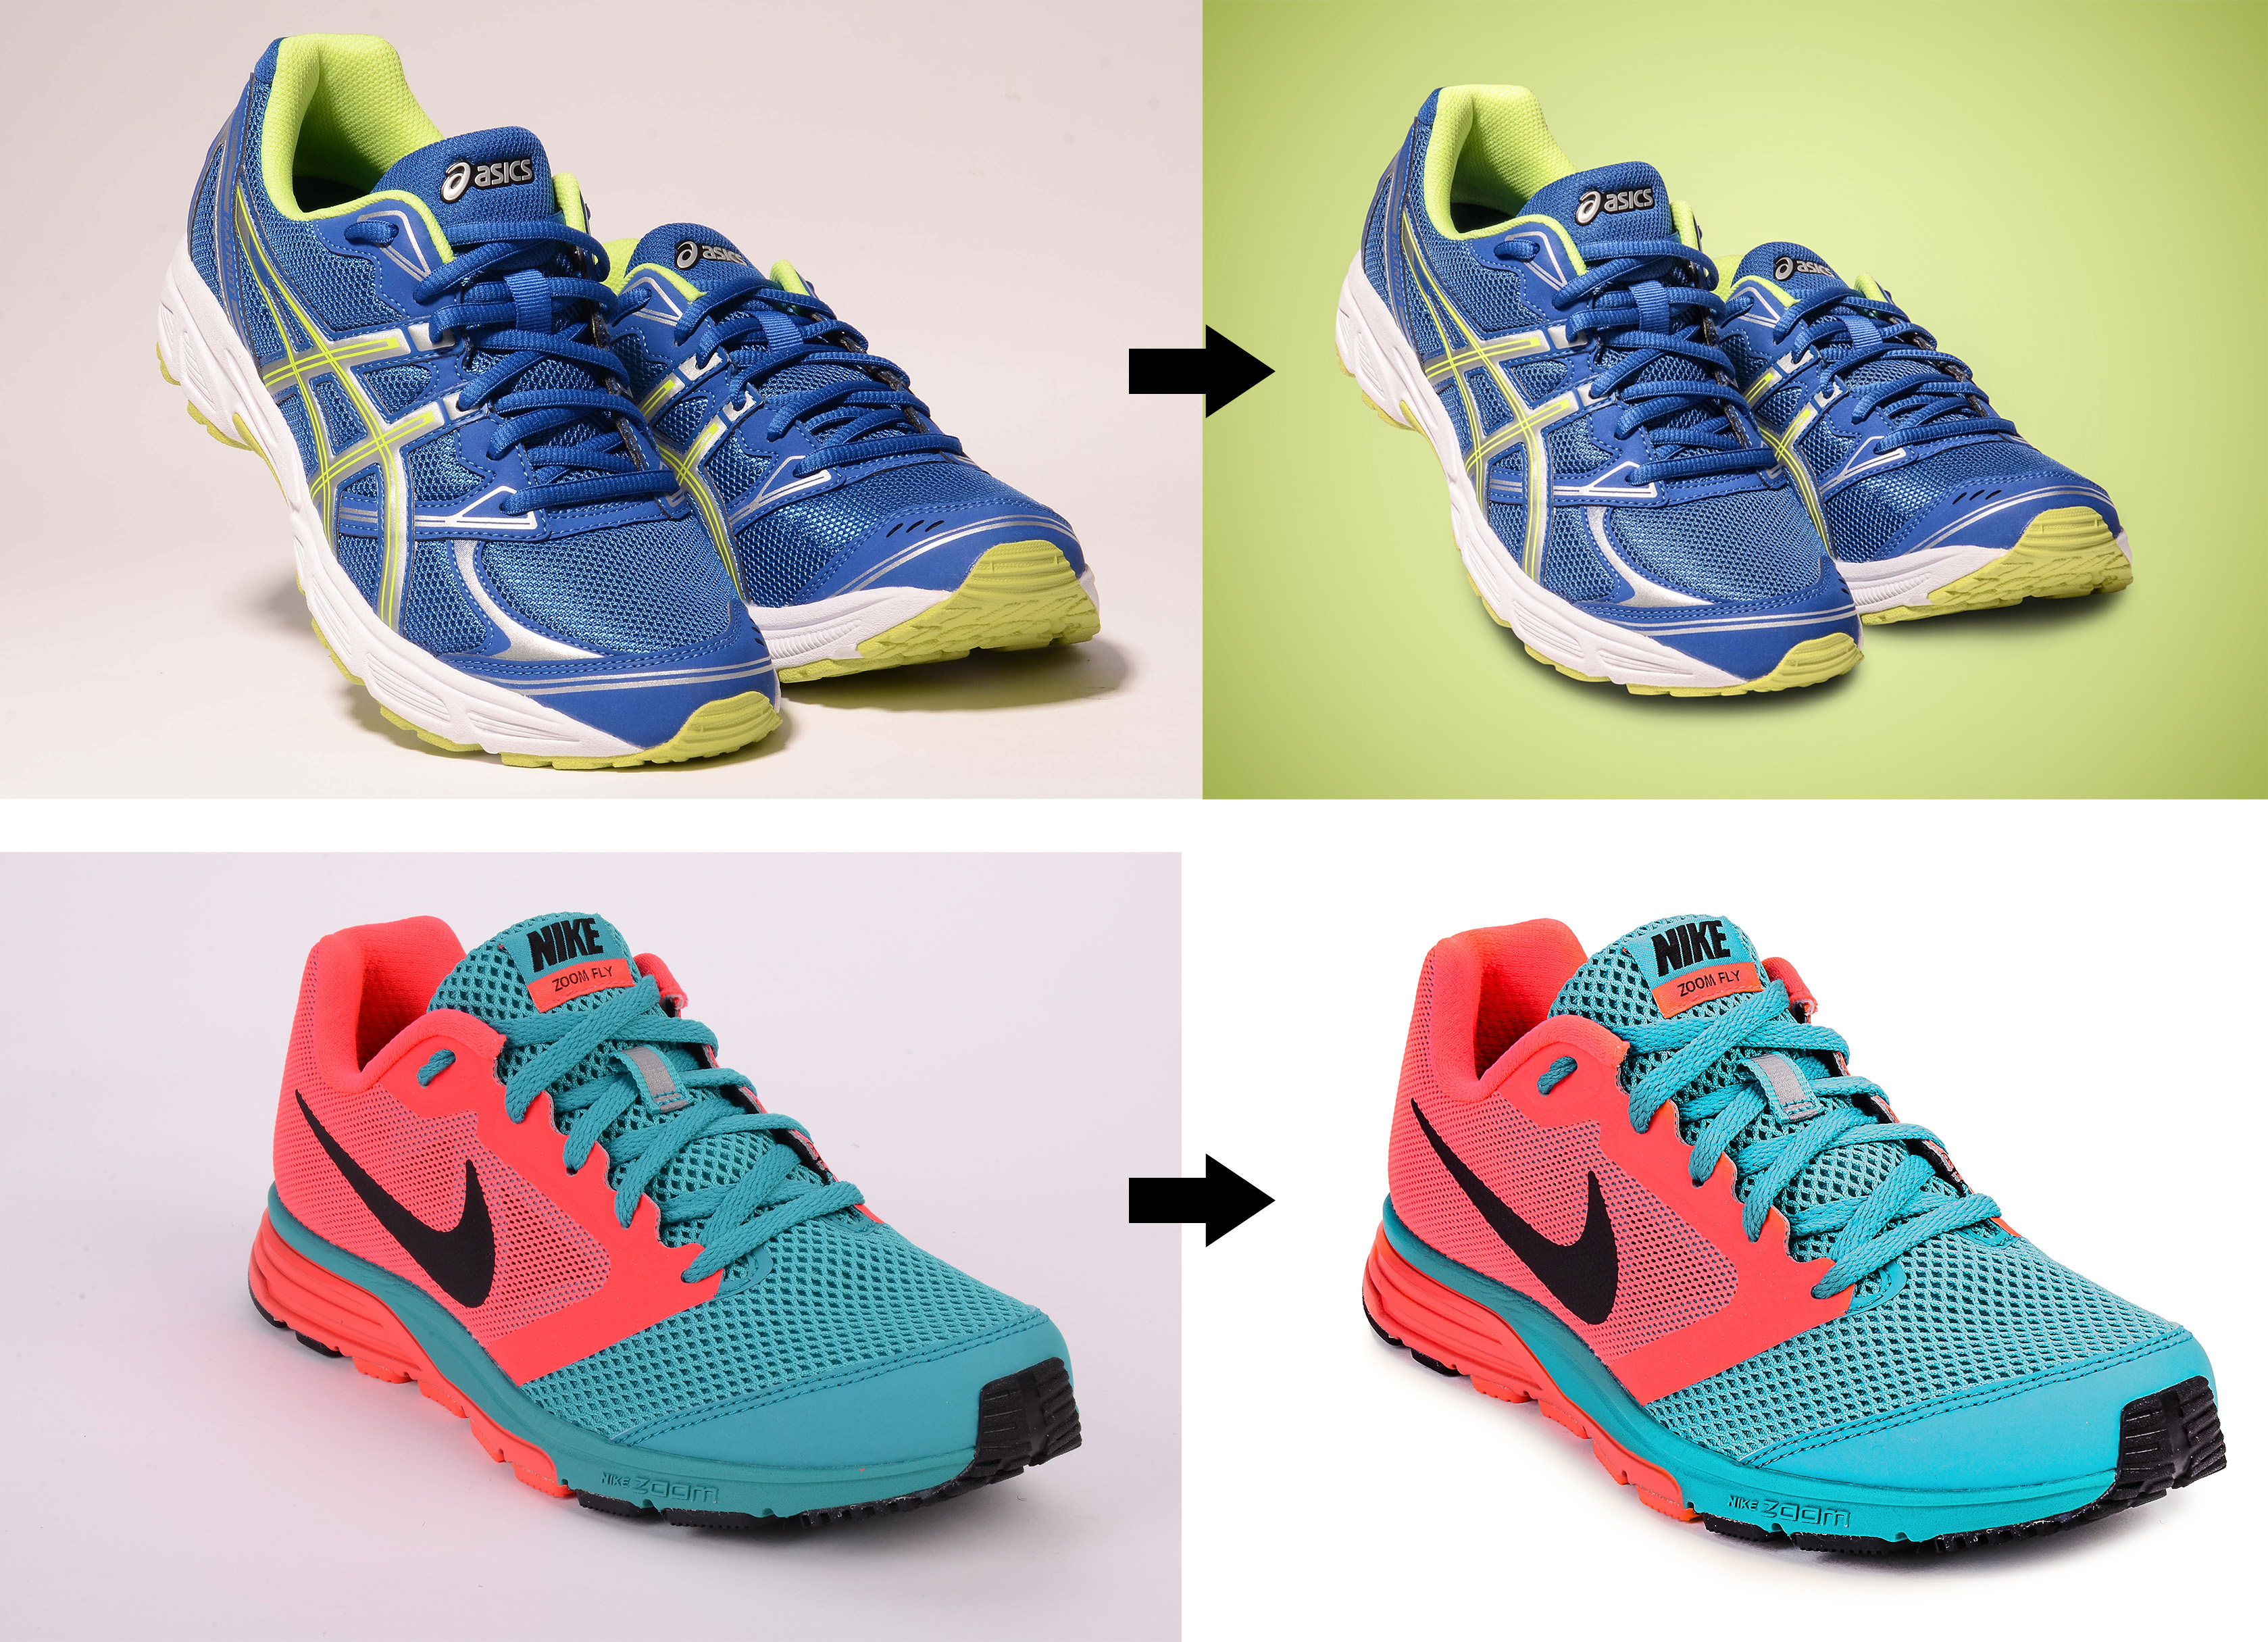 do Photoshop editing for e-commerce